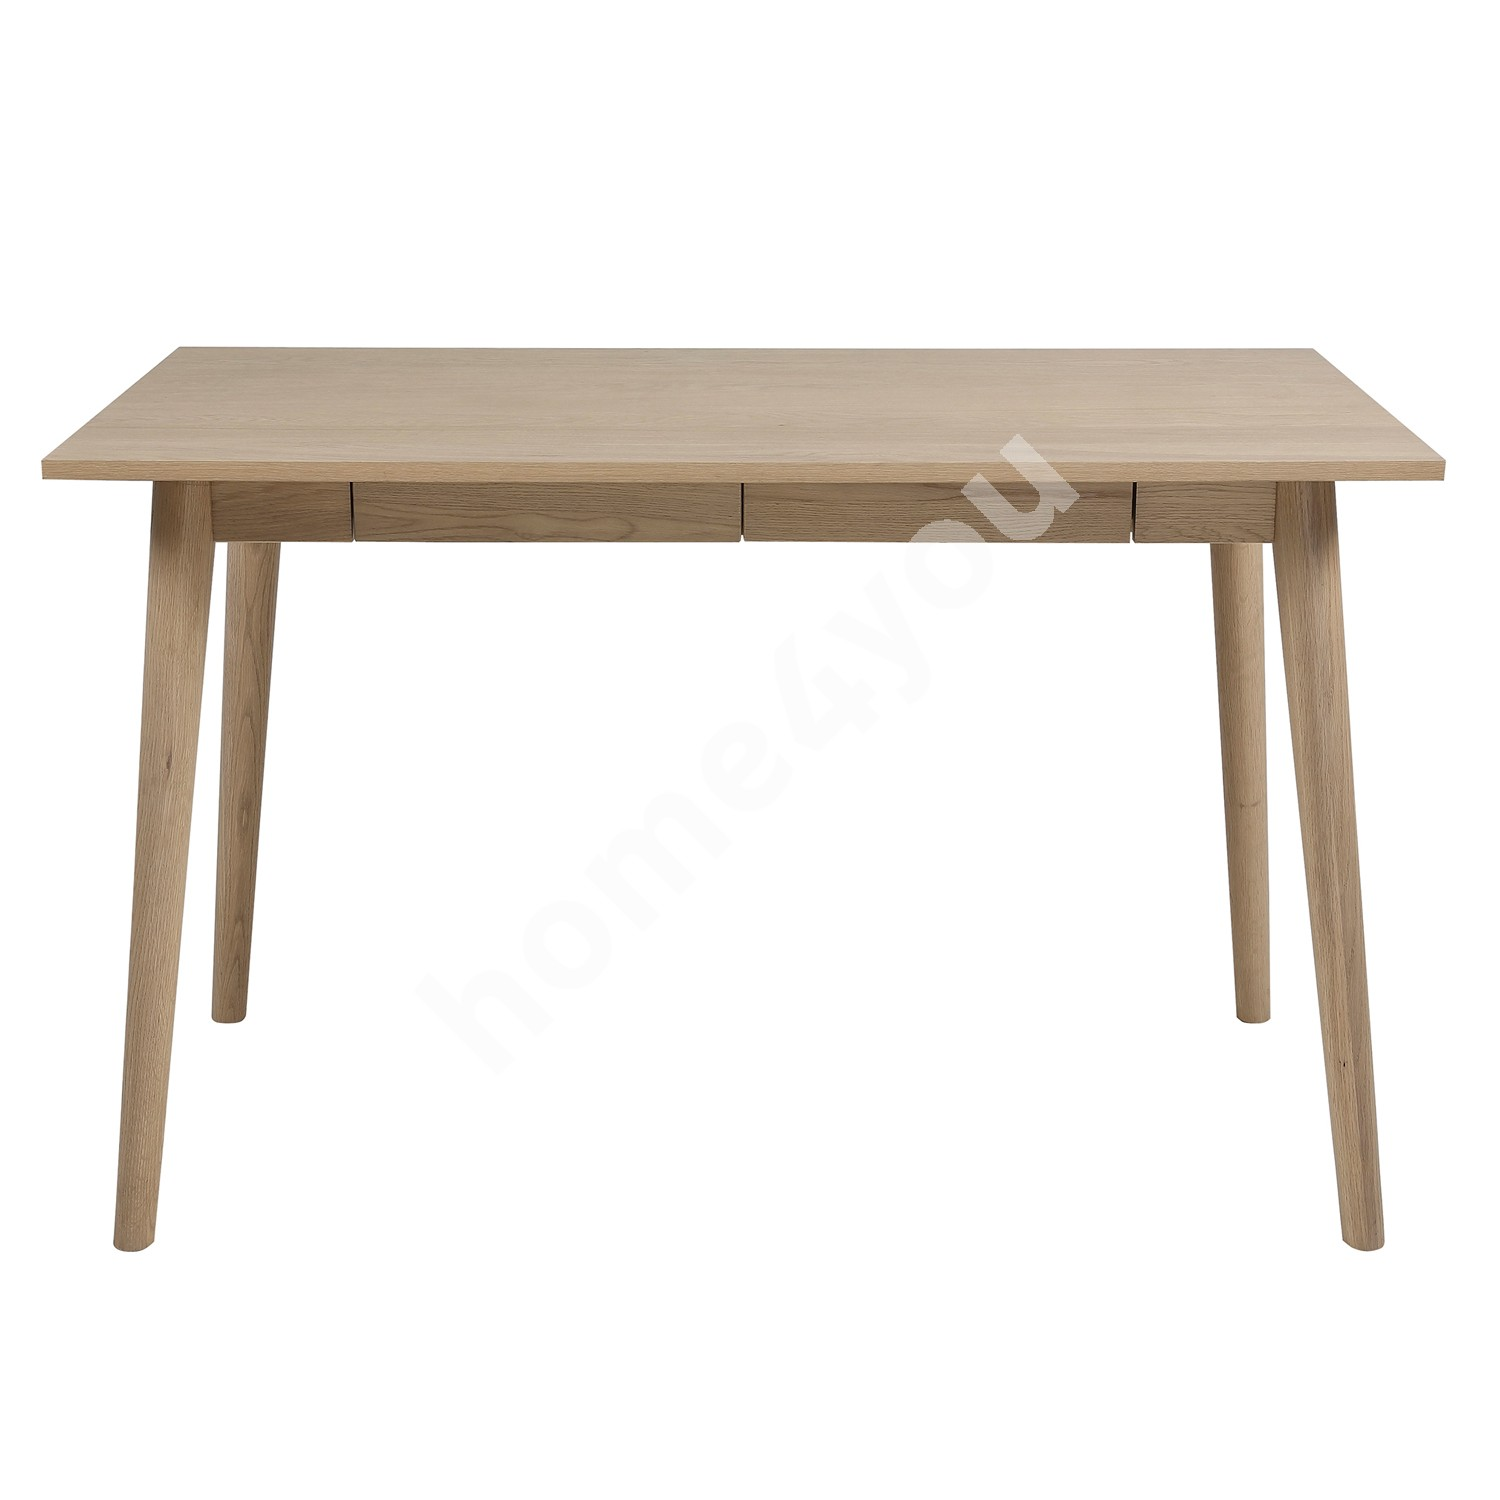 Desk MARTE with 2 drawers, 120x60xH75cm, white stained oak